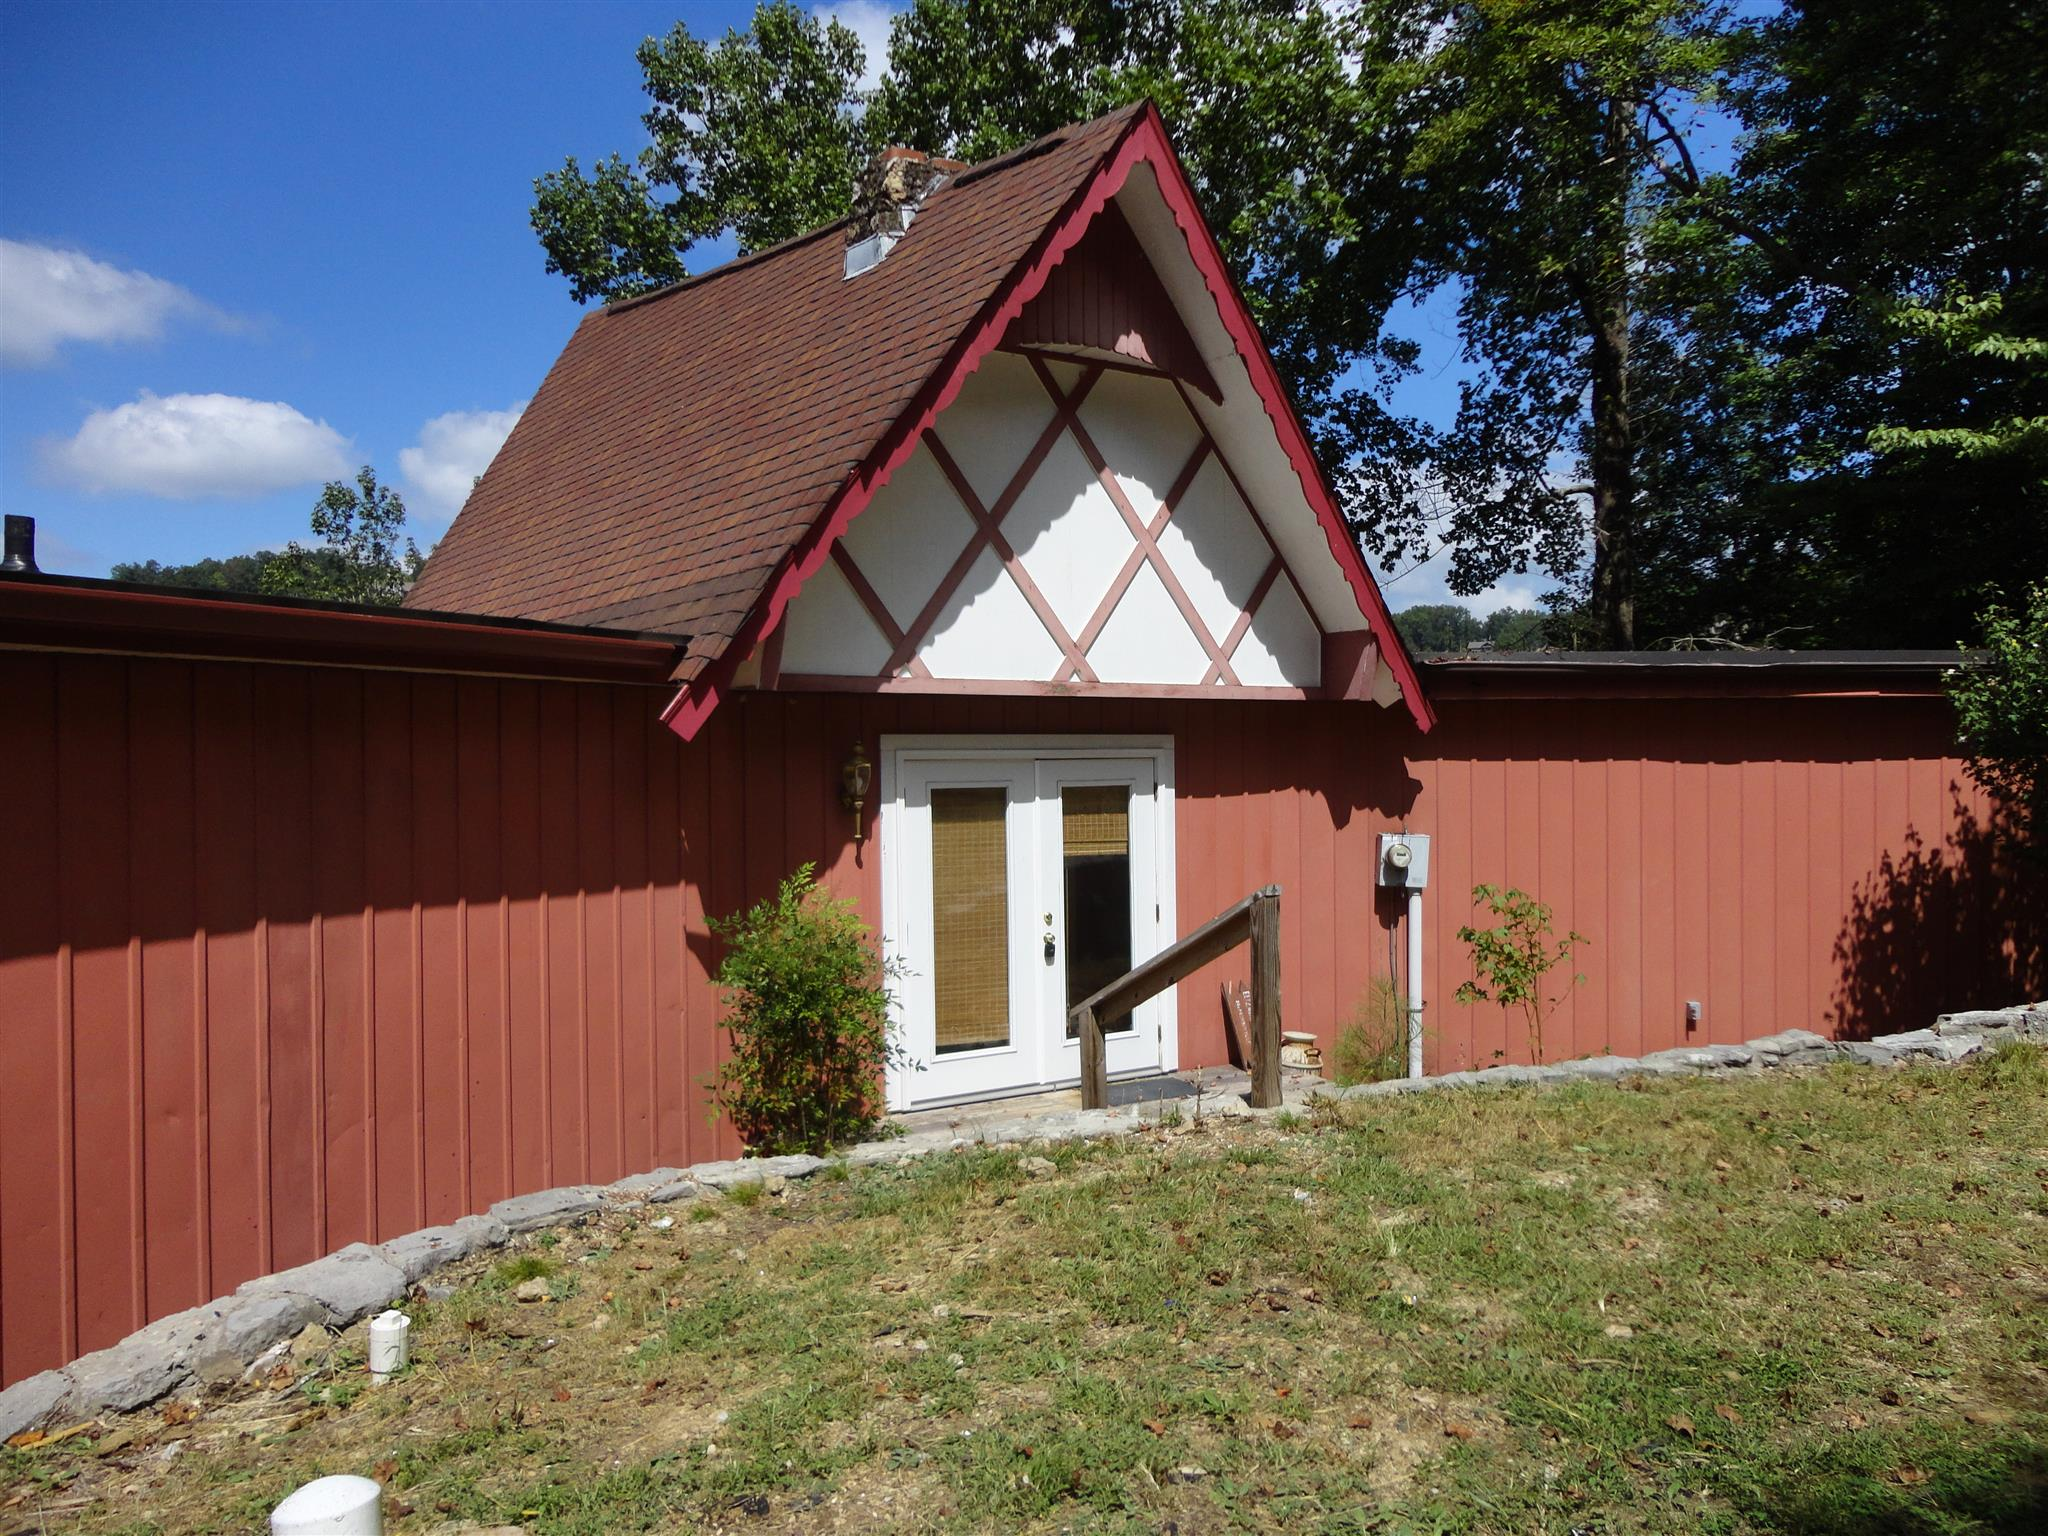 268 Summer Ct, Smithville, TN 37166 - Smithville, TN real estate listing